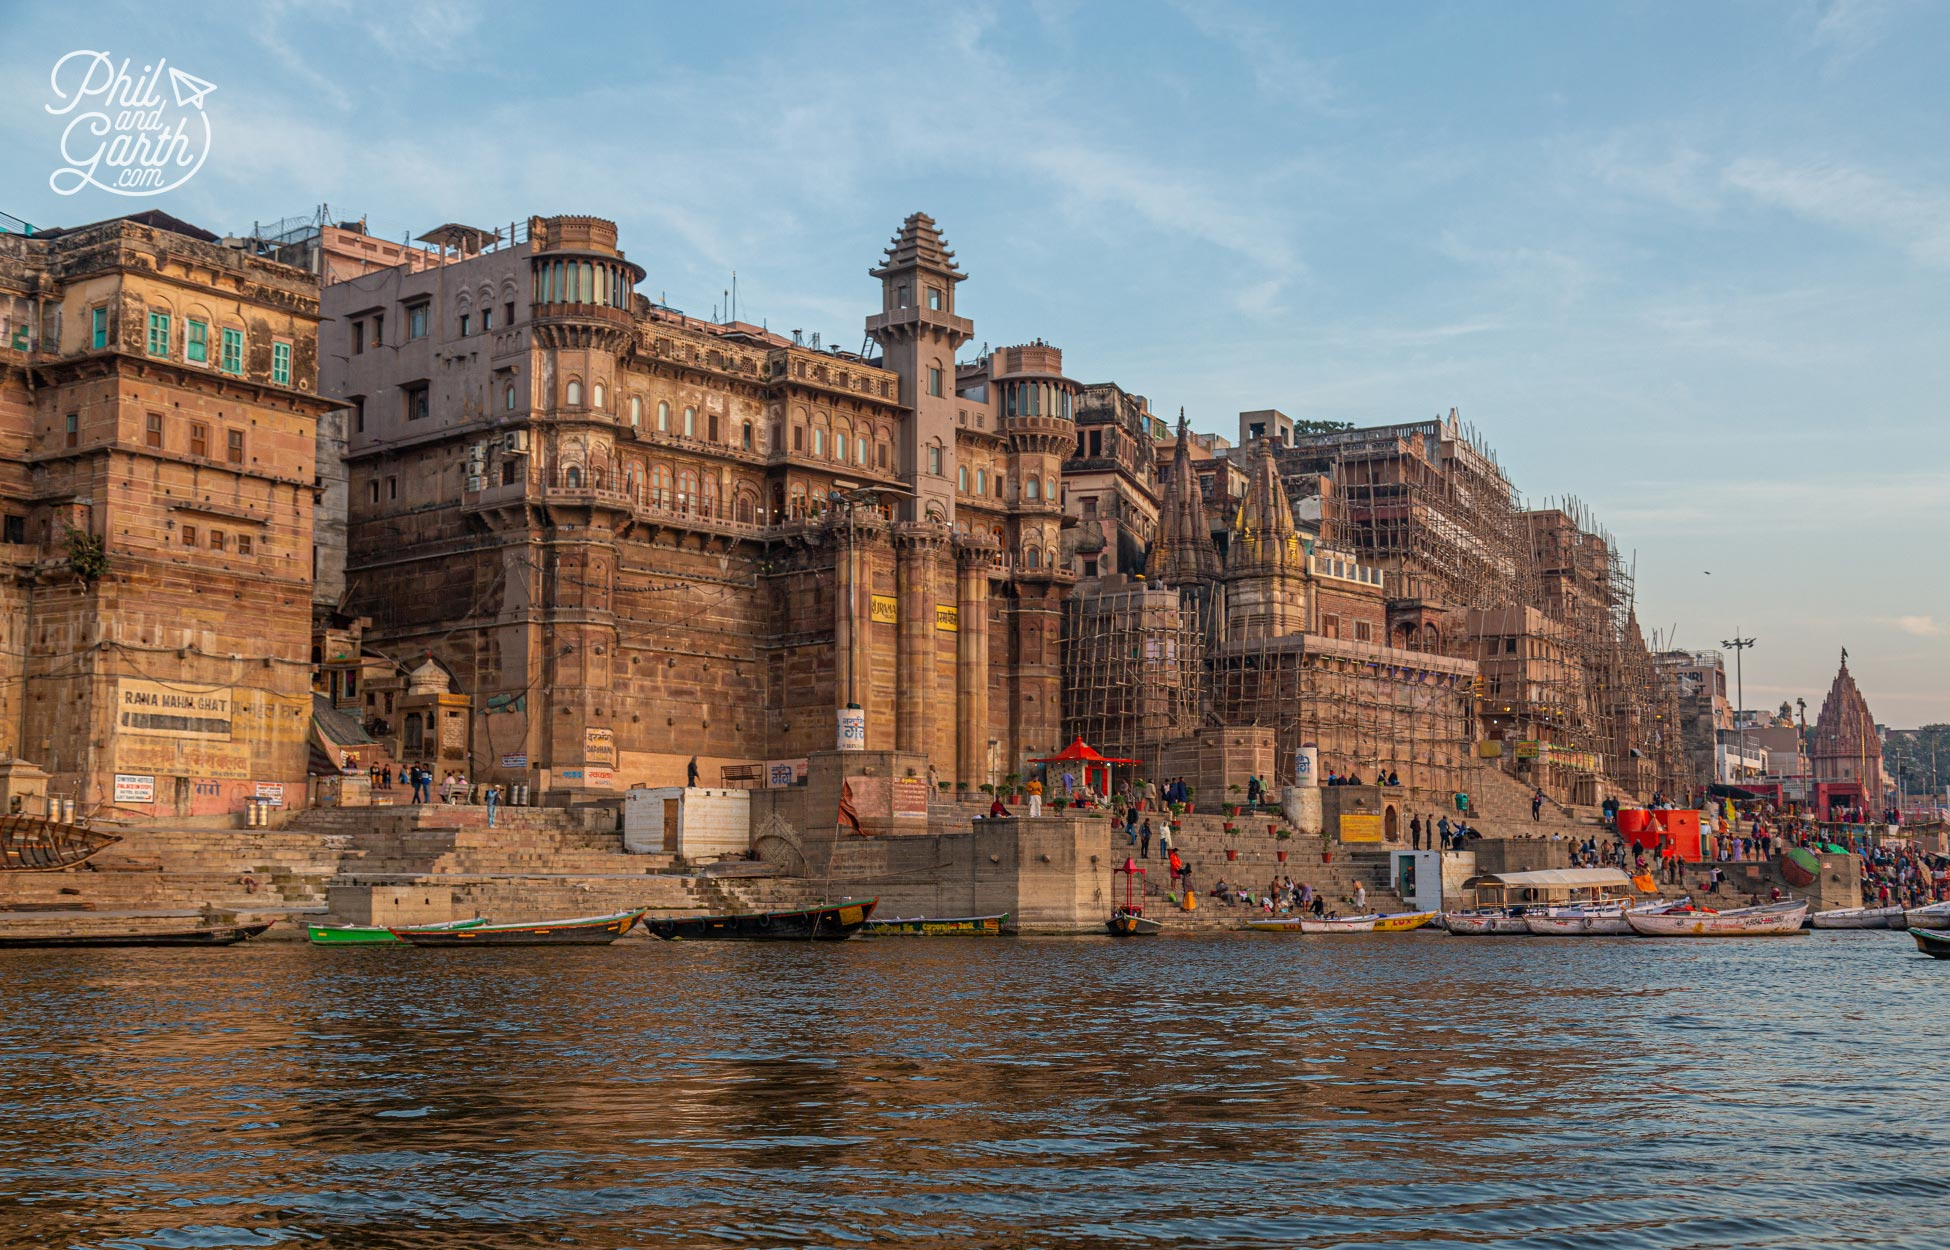 Varanasi is considered to be one of the oldest continuously inhabited cities in the world